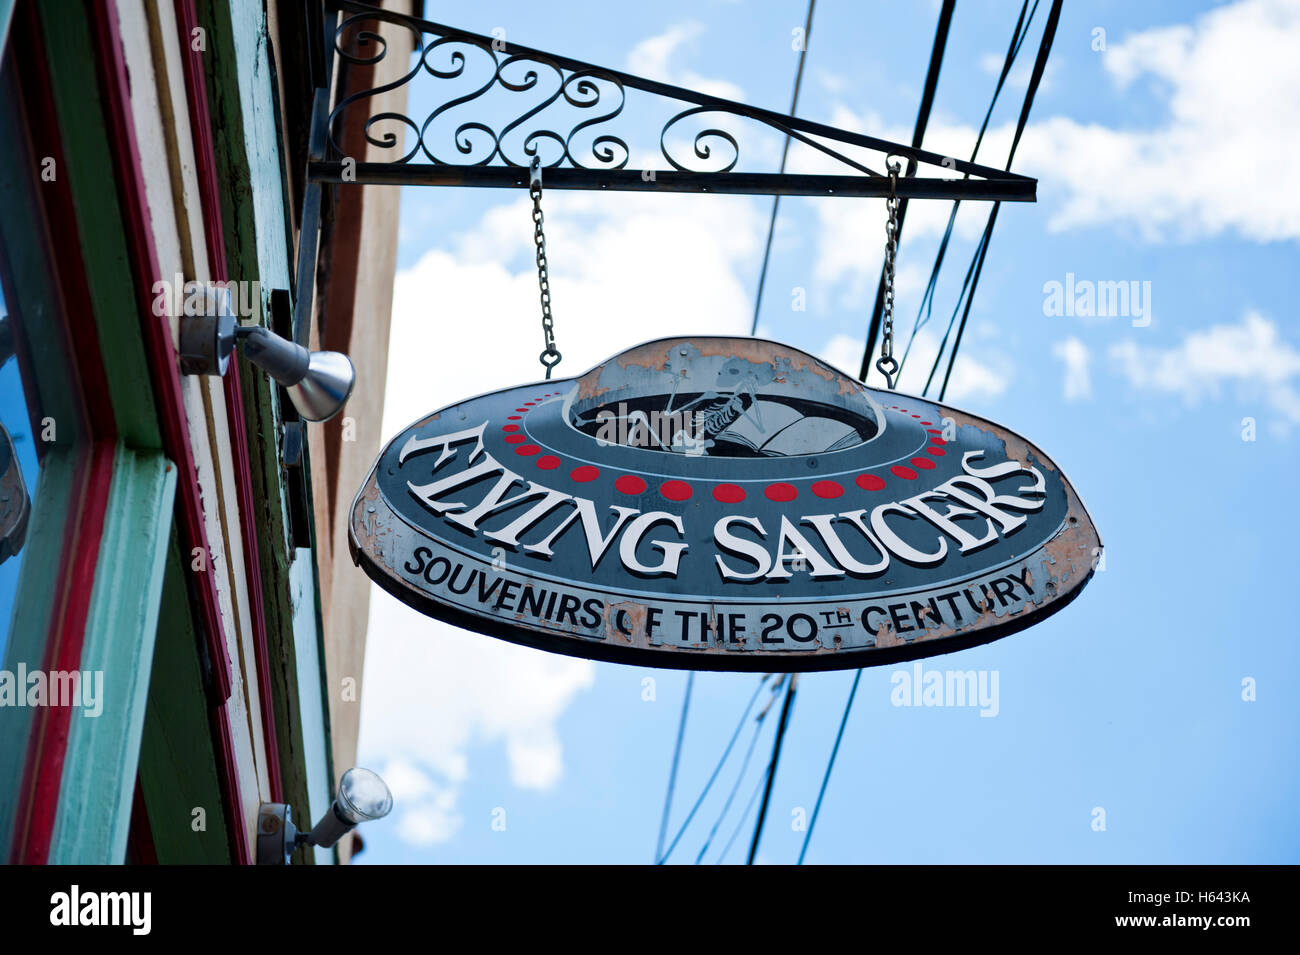 The front sign for Flying Saucers a retail shop in historic Bisbee Arizona - Stock Image